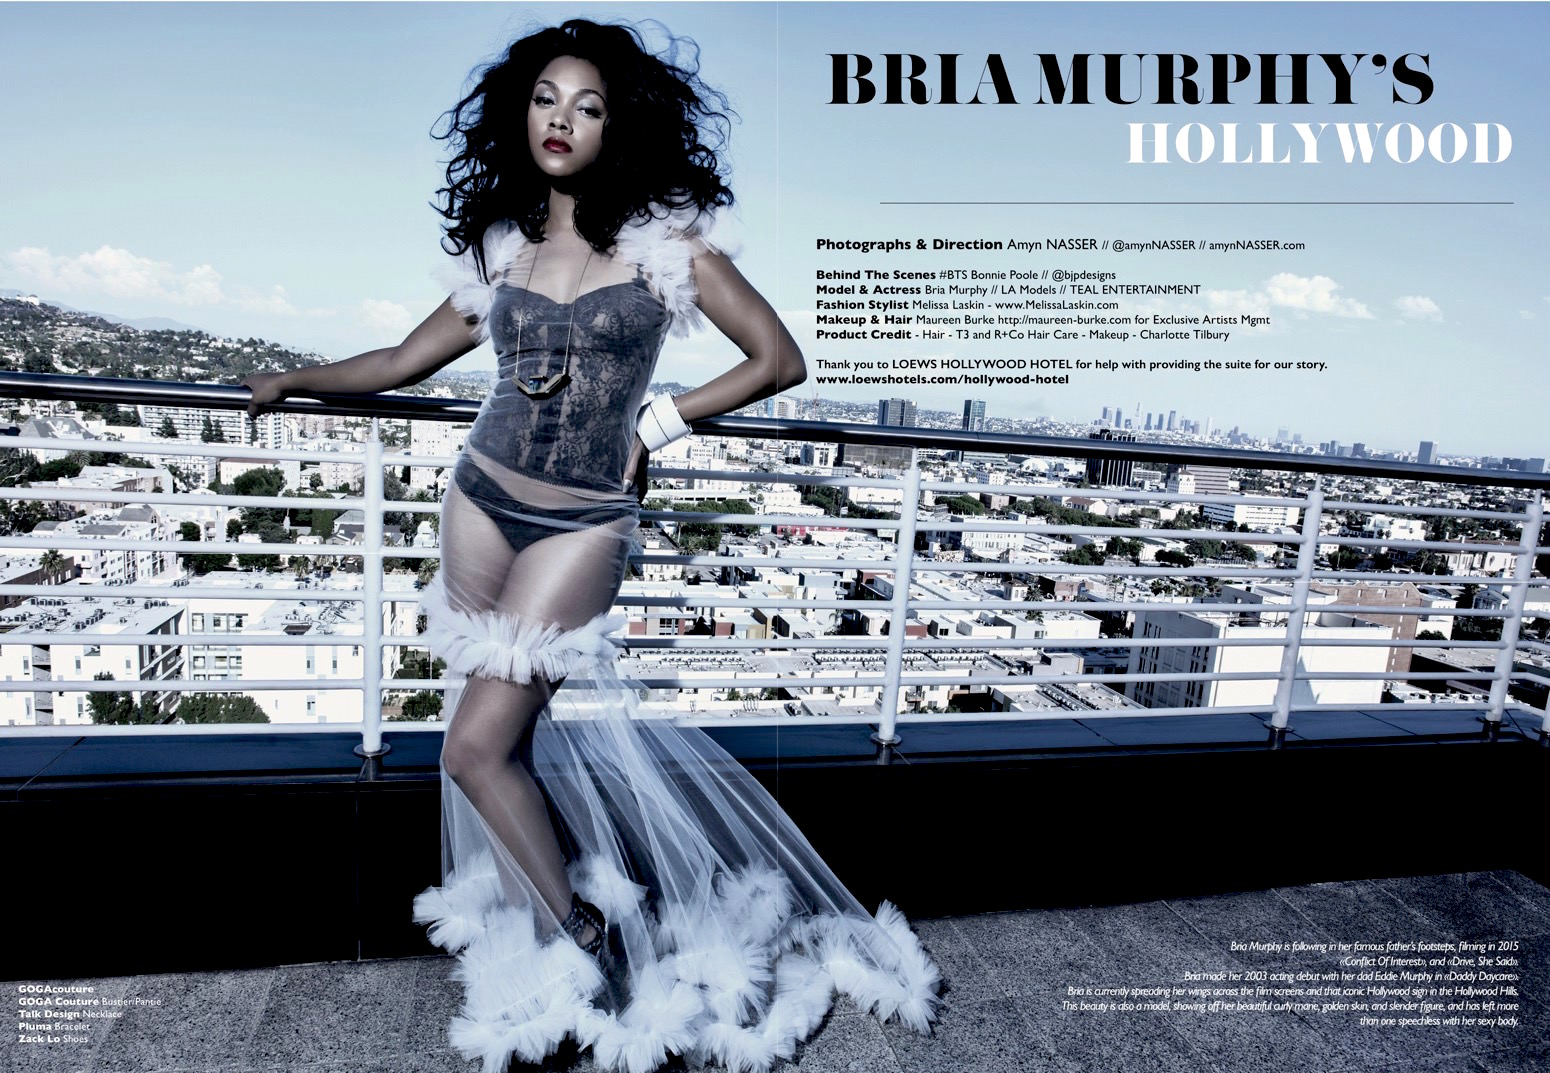 Cover and Fashion Editorial - Bria Murphy's Hollywood - Talent Bria Murphy - Photographs Amyn Nasser - Styling Melissa Laskin - Makeup & Hair Maureen Burke - Photographed at the LOEWS Hollywood Hotel - Thank you for the help and great location - BTS Bonnie Poole -  Prestige International Magazine PIM 18 -